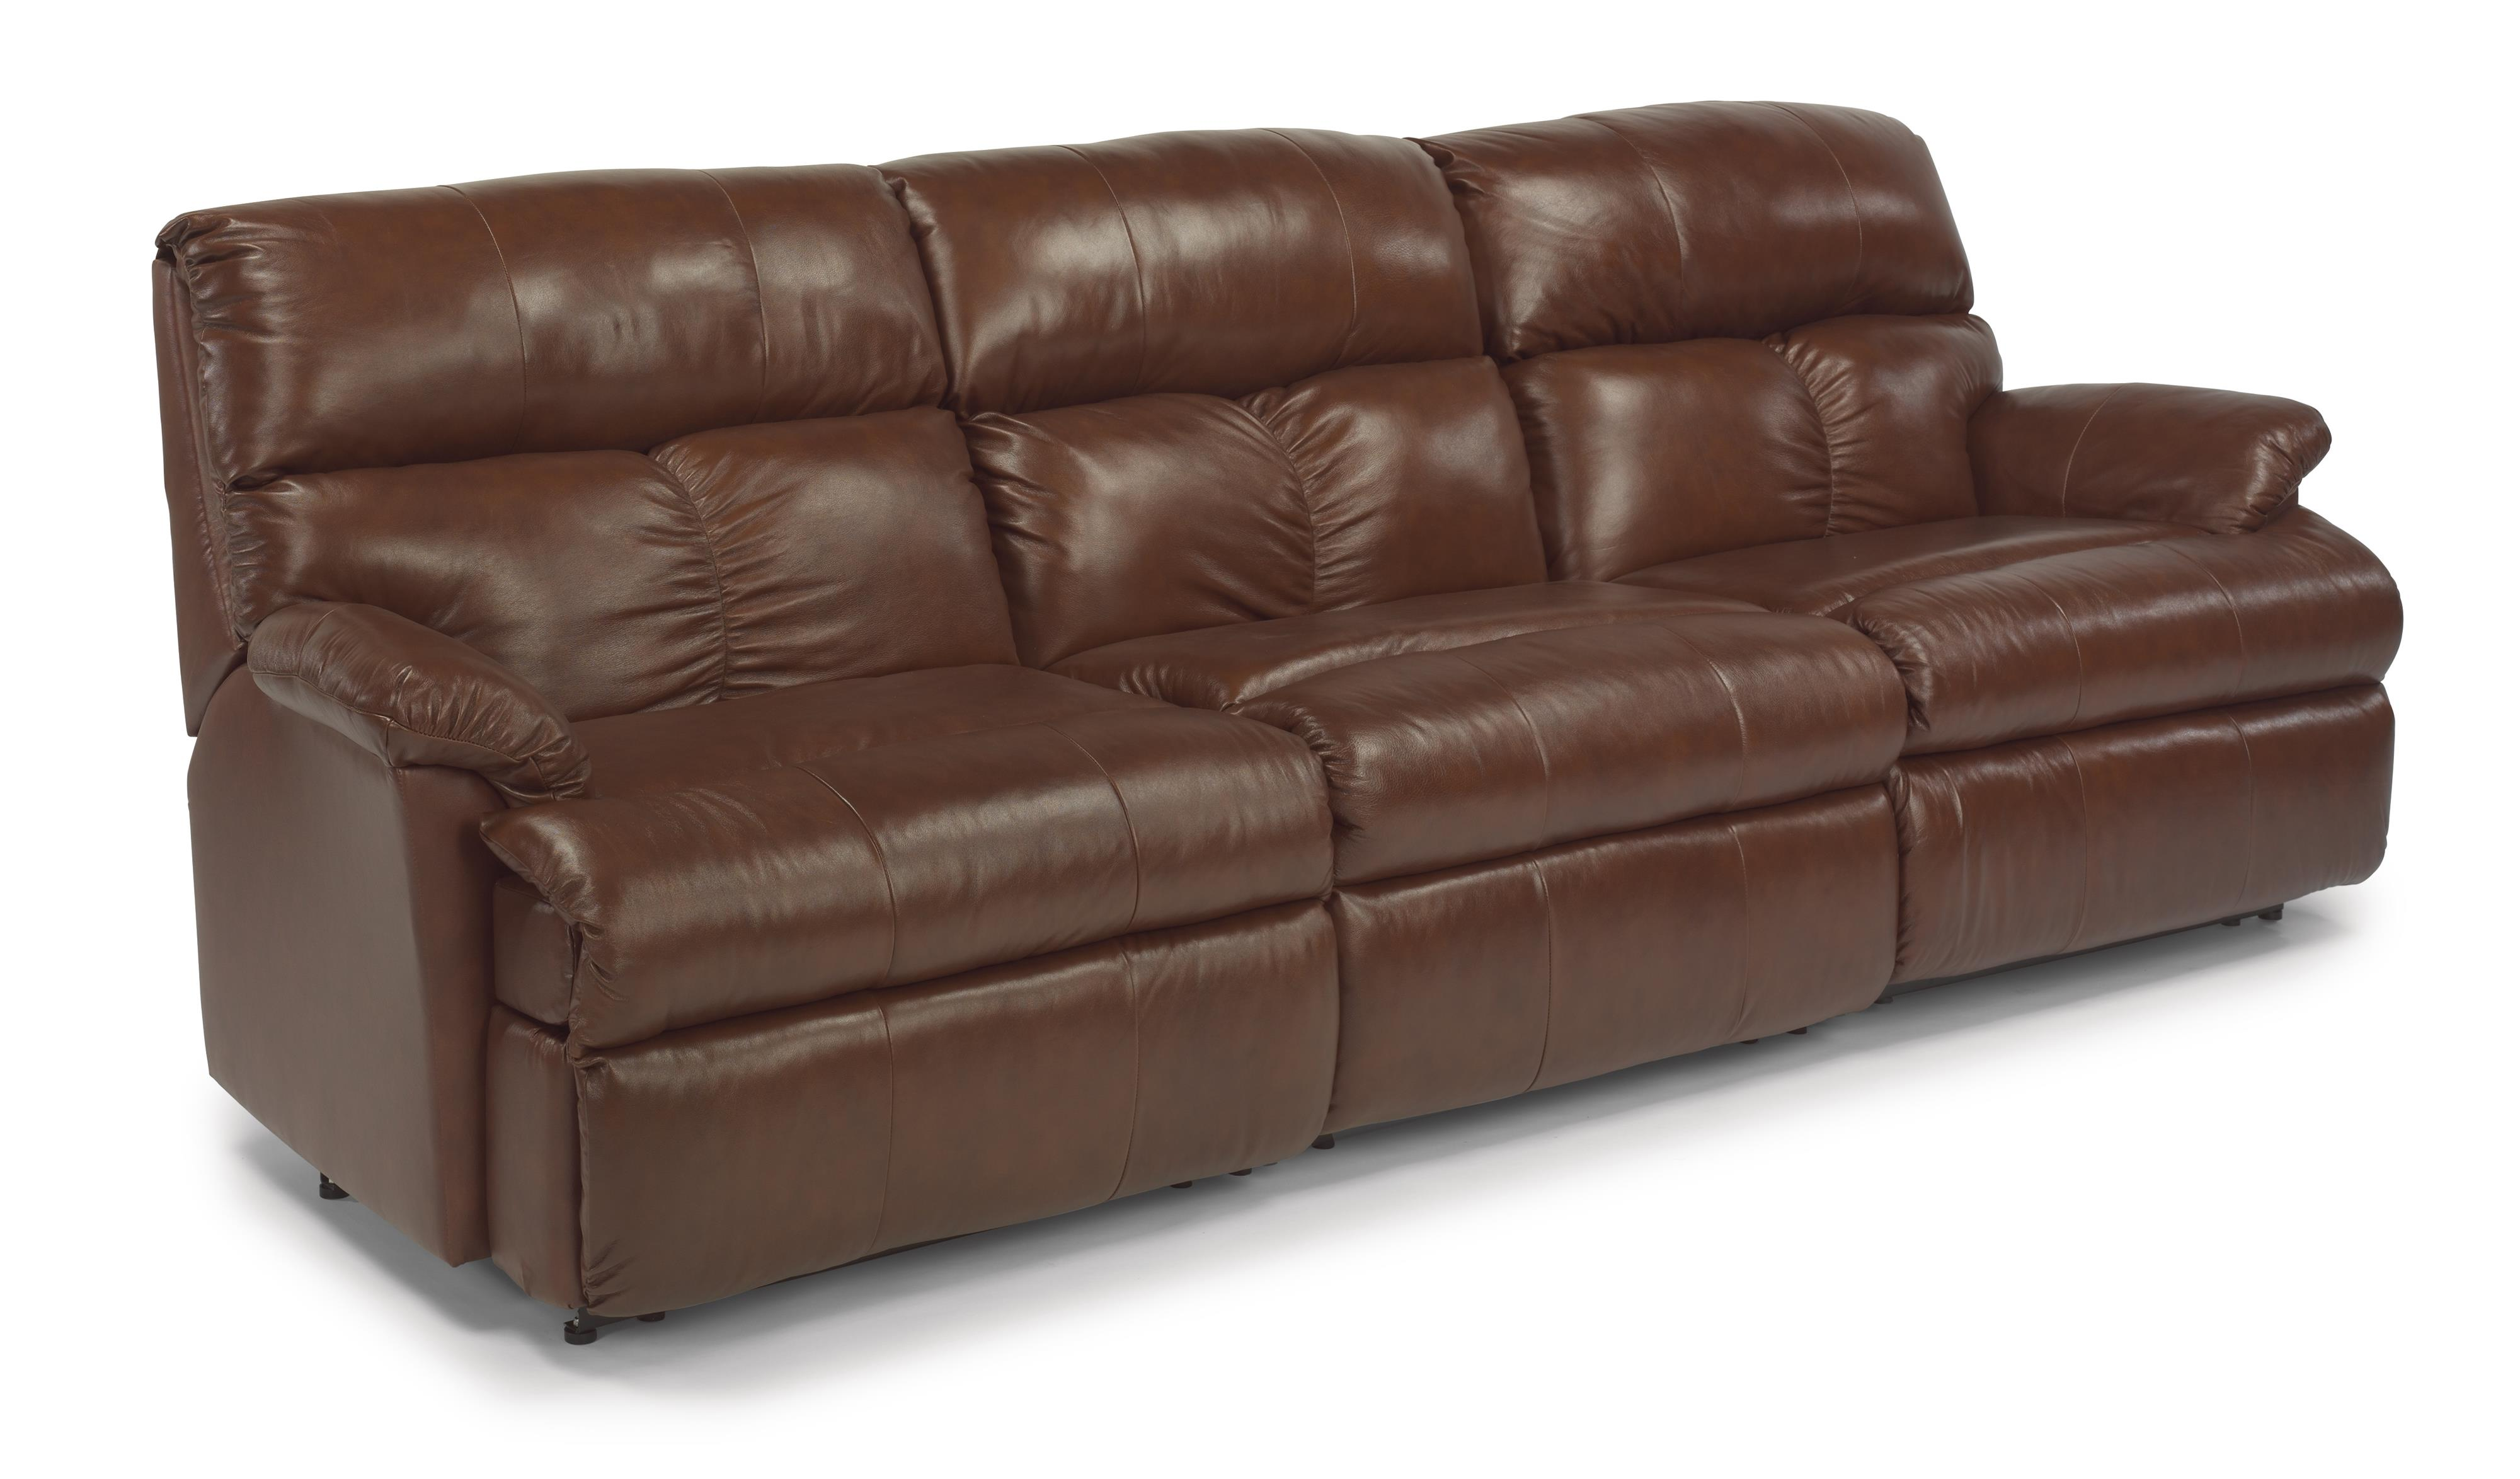 Flexsteel Triton Three Piece Reclining Sectional Sofa With